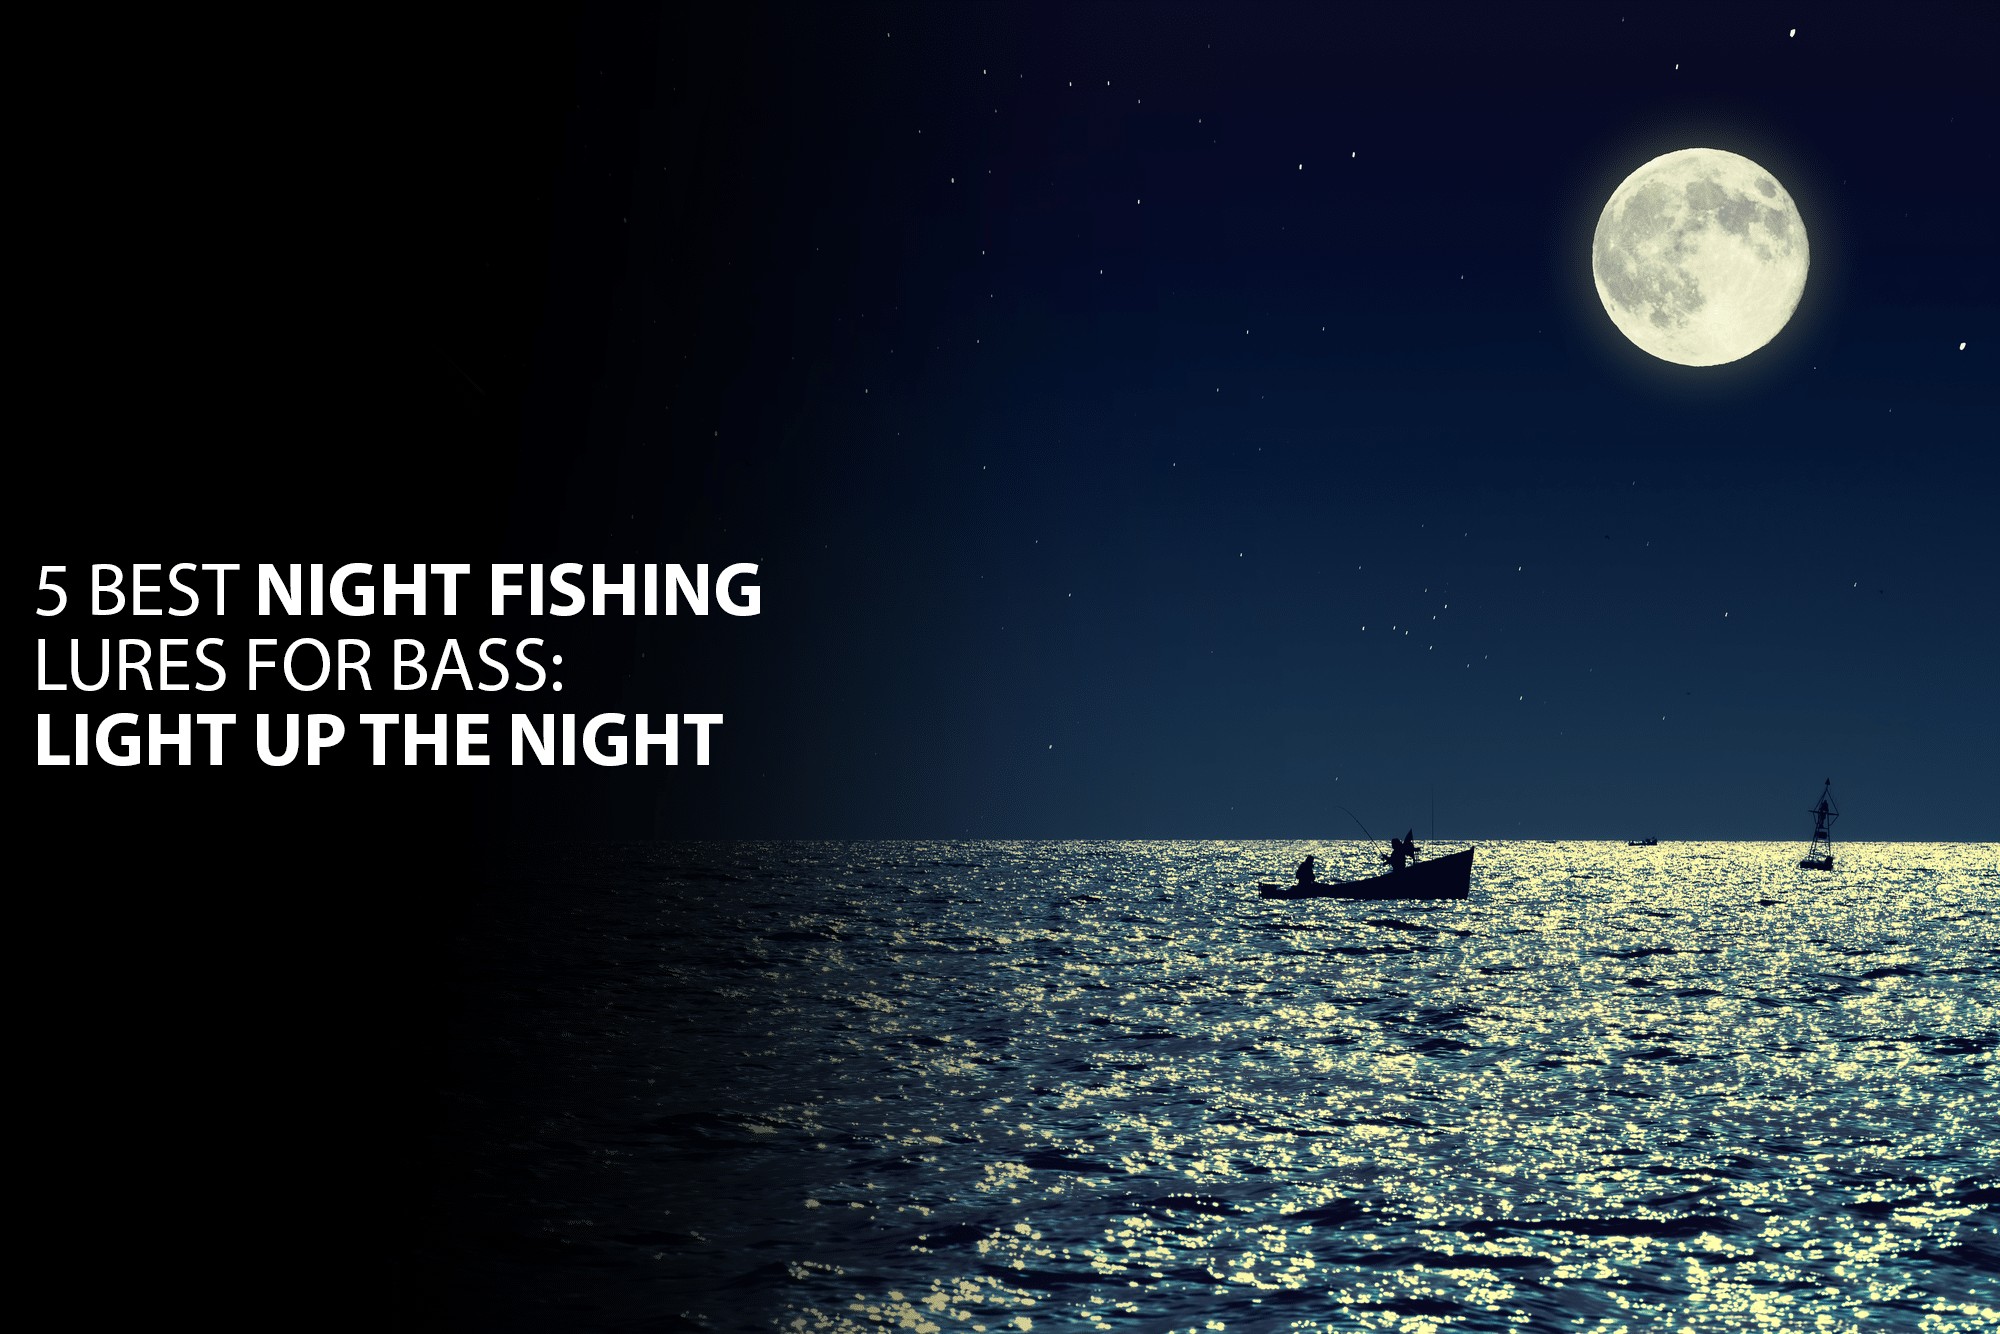 Scenic view of small fishing boat in calm sea water at night and full moon.